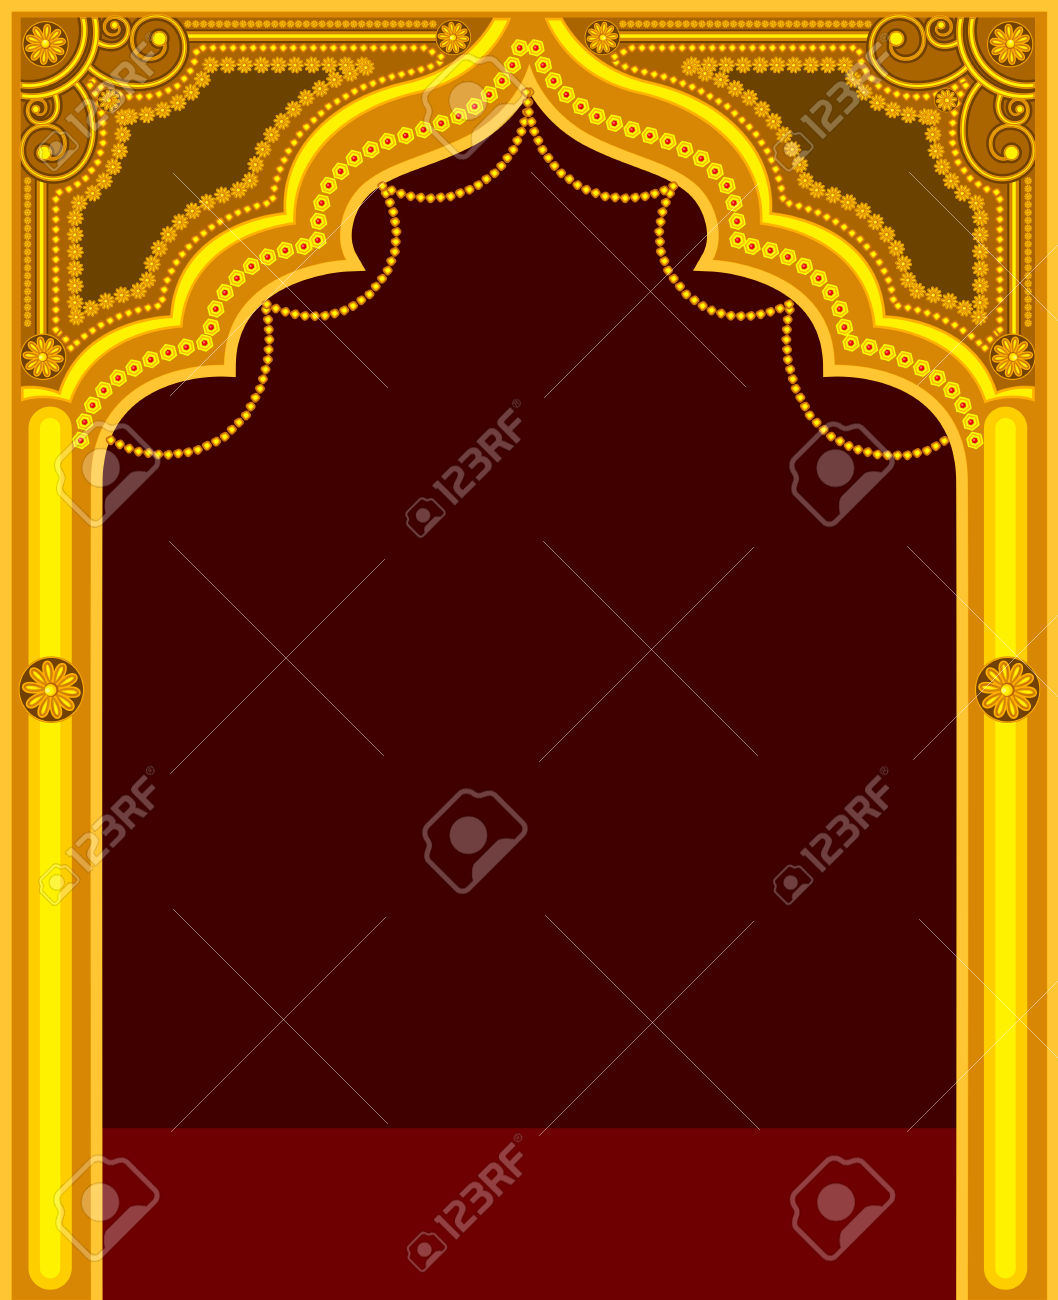 Mandir Gate Design Clipart.